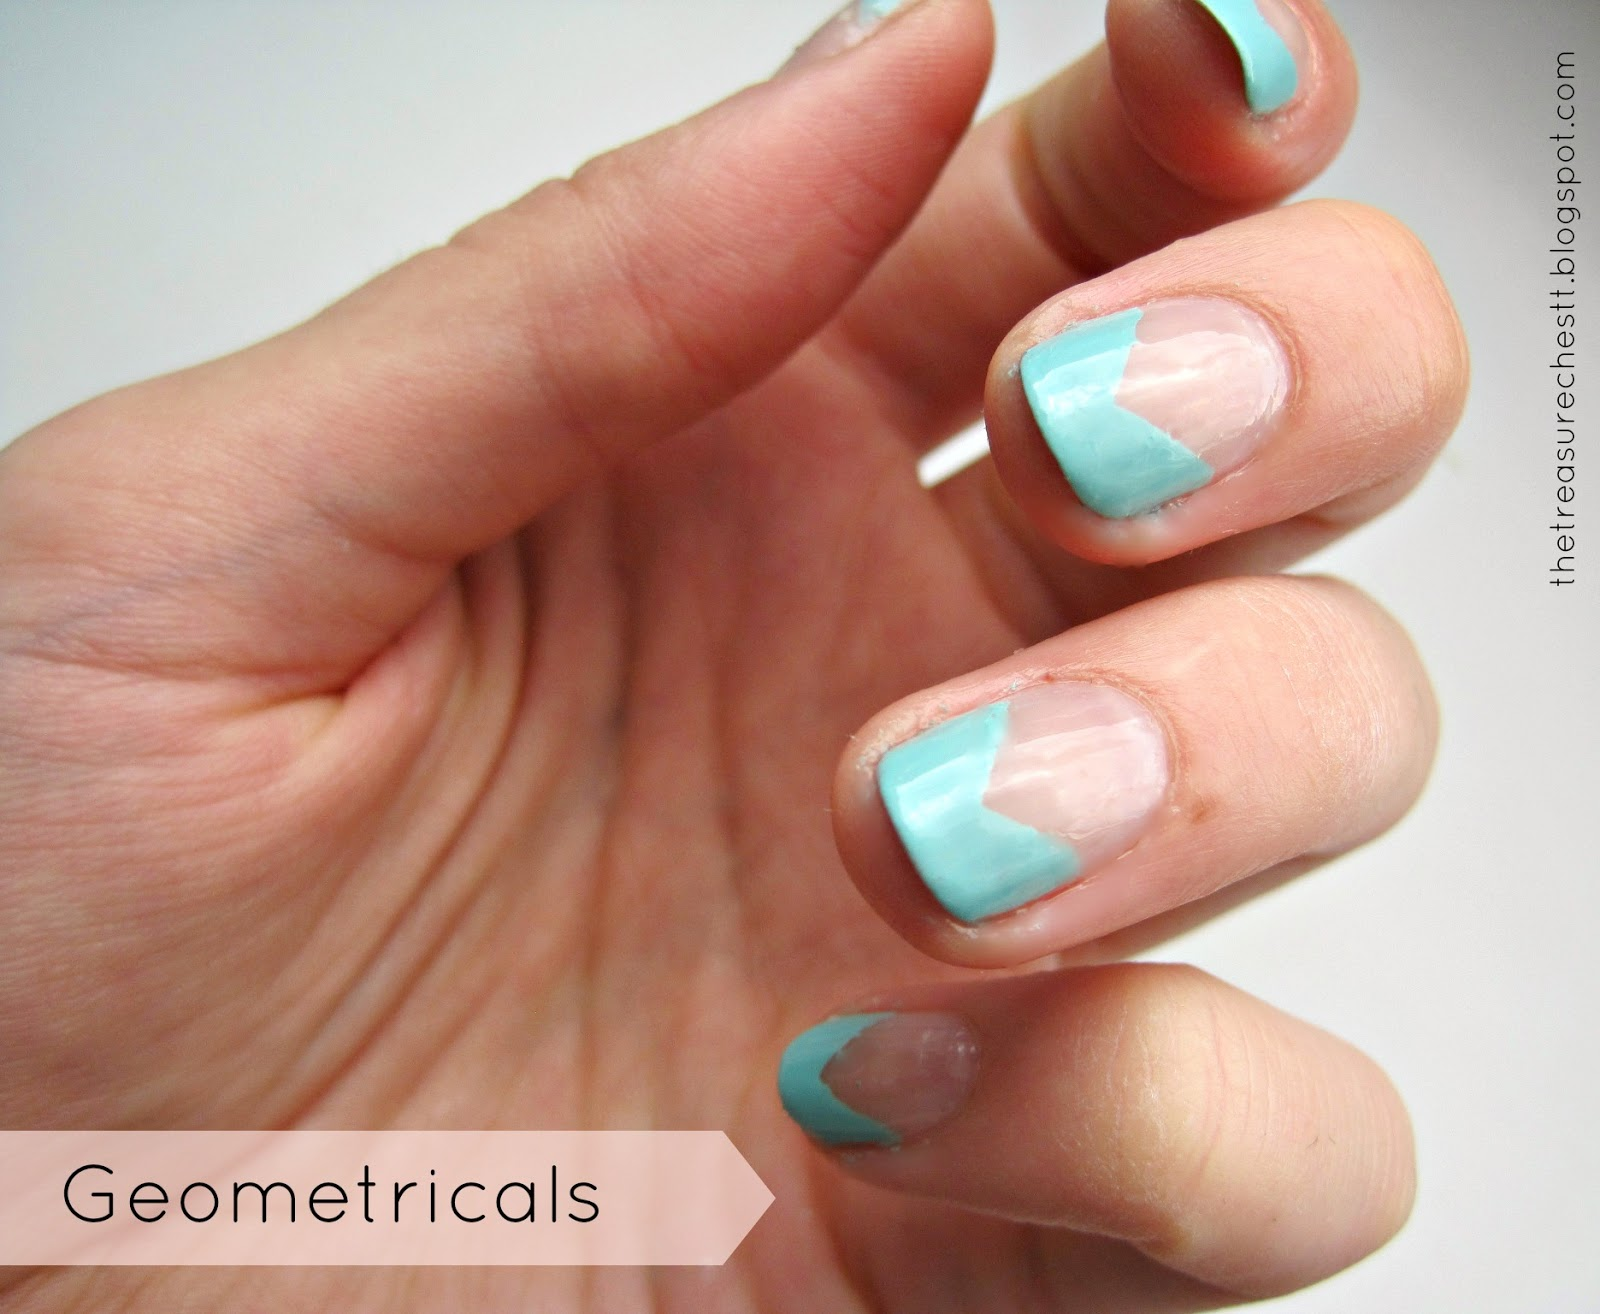 The Treasure Chest: Geometric Tips - The New French Manicure